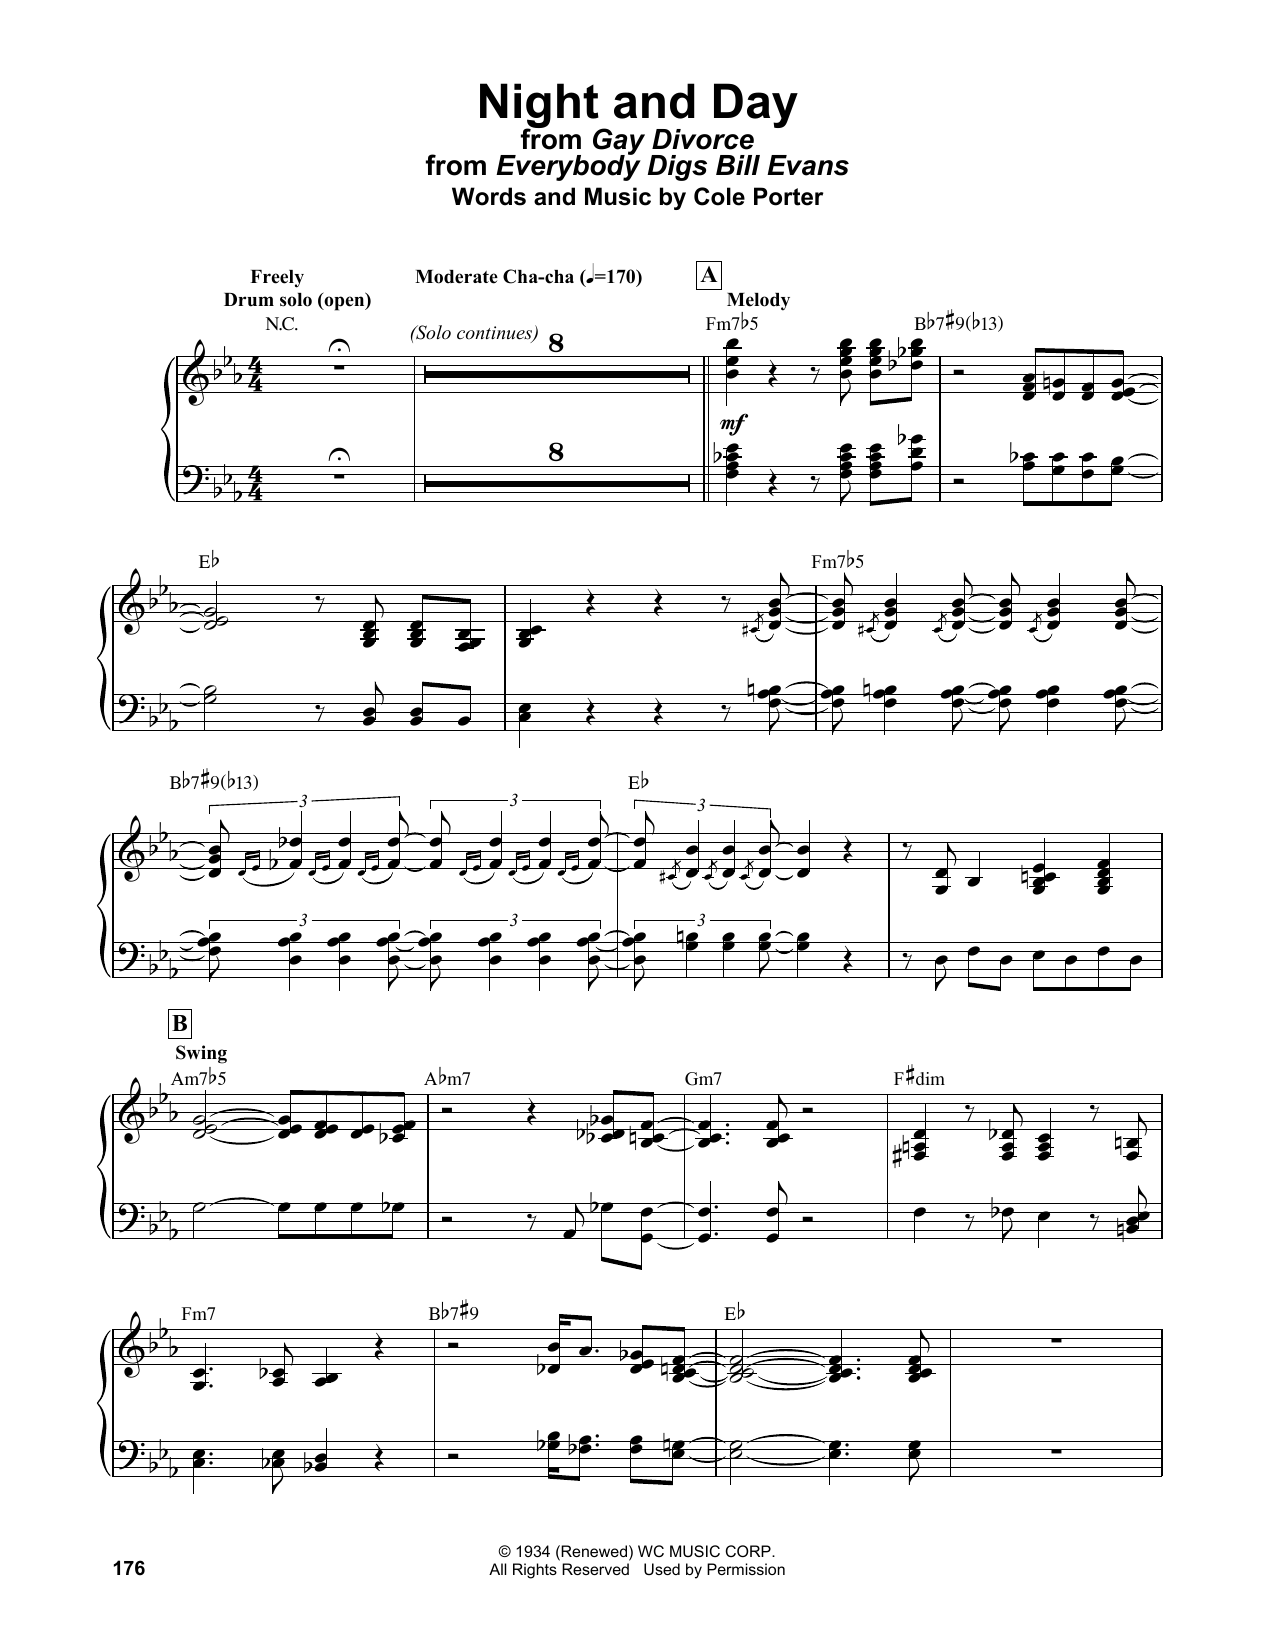 Bill Evans Night And Day (from Gay Divorce) sheet music notes and chords. Download Printable PDF.